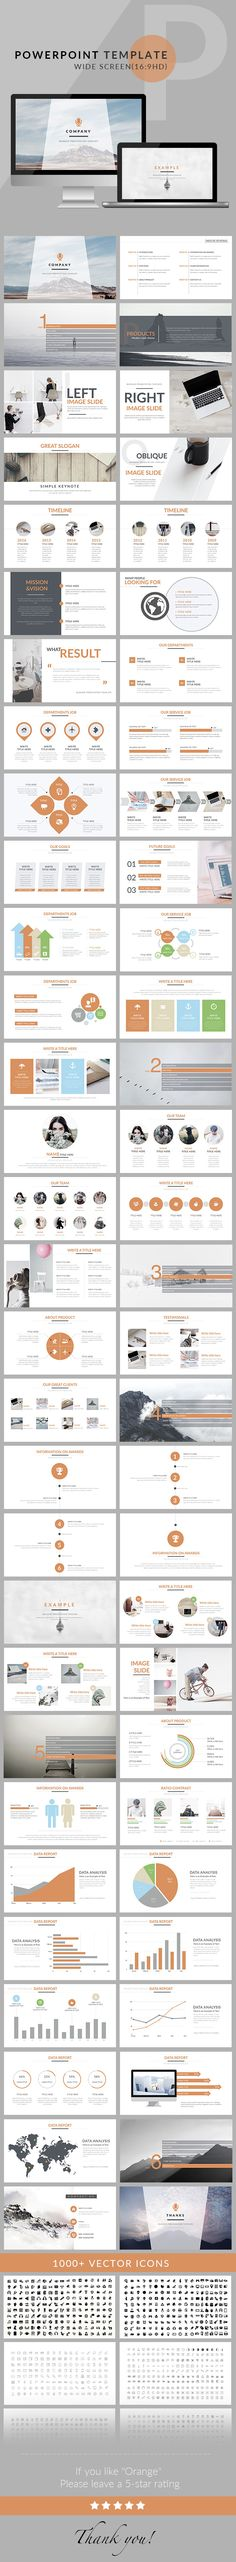 Orange - Clean trend business PowerPoint Template. Download here: graphicriver.net/...